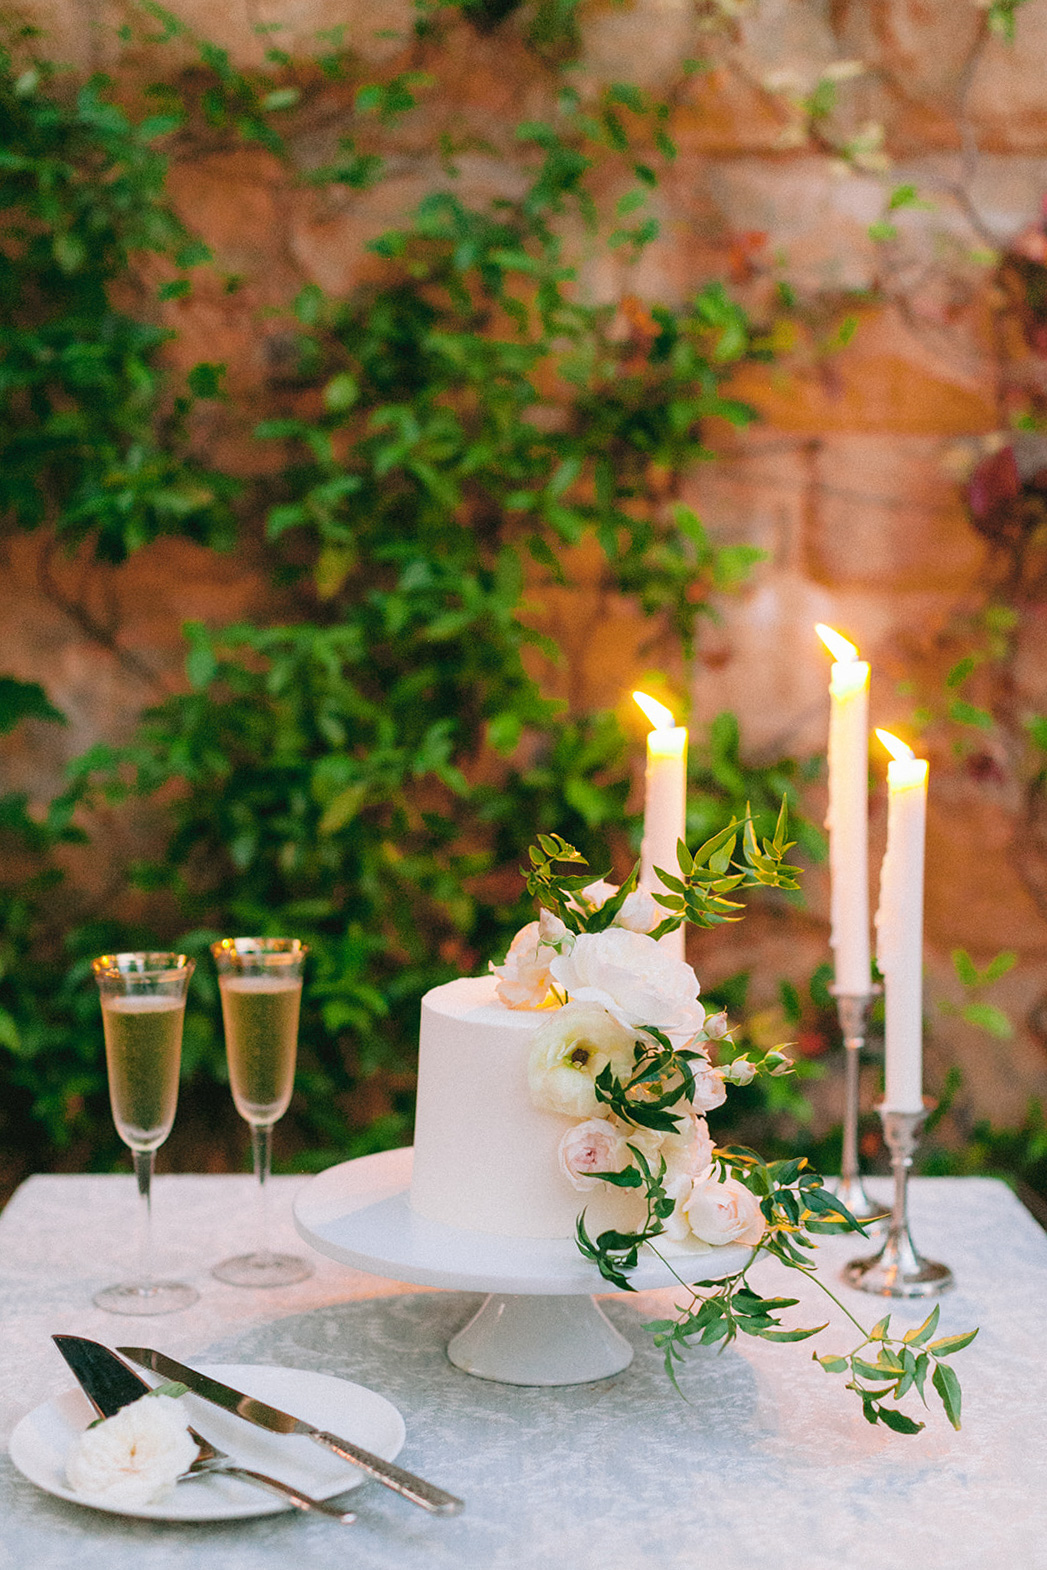 small wedding cake with florals and candles